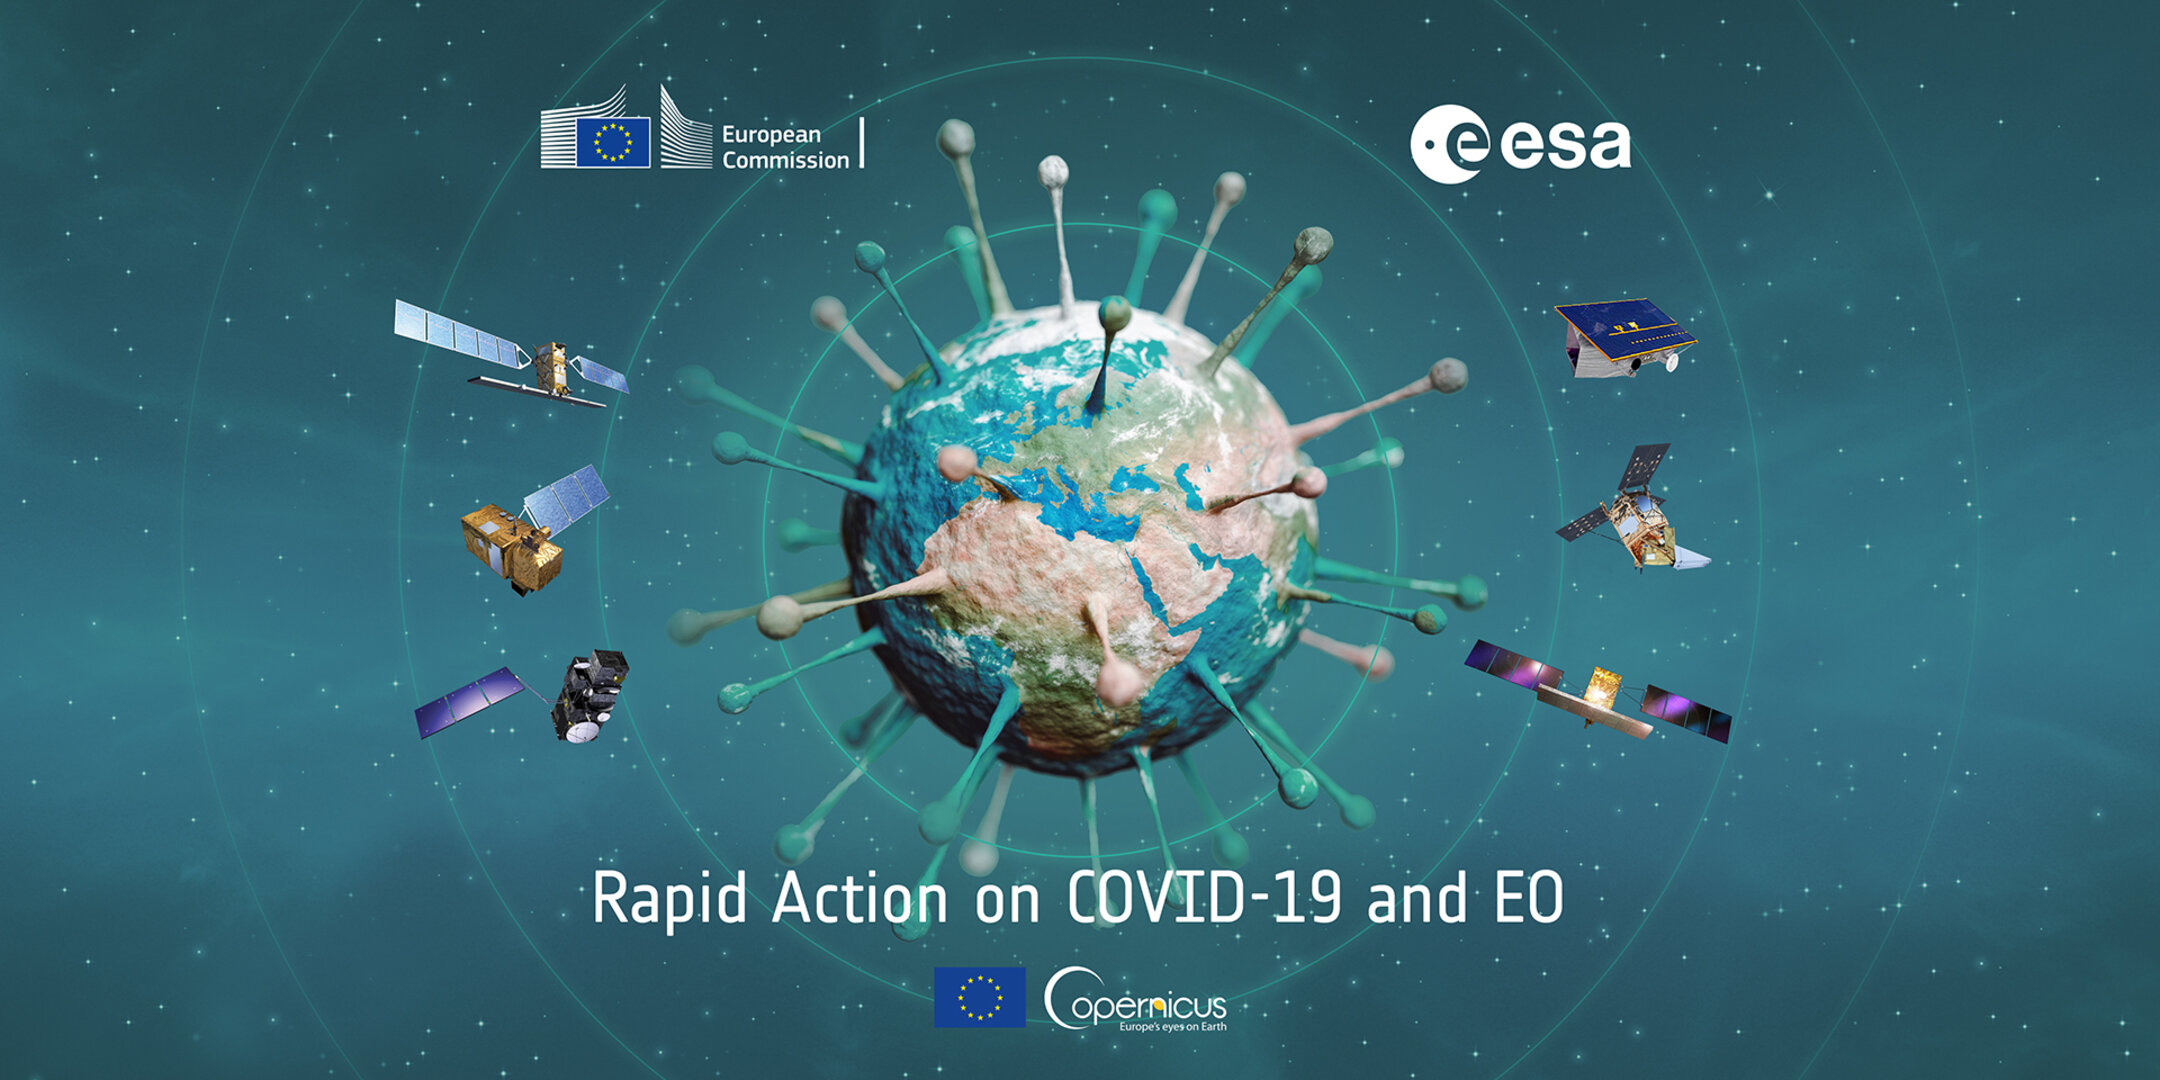 RespiraSense wins European Space Agency contract to fight COVID-19